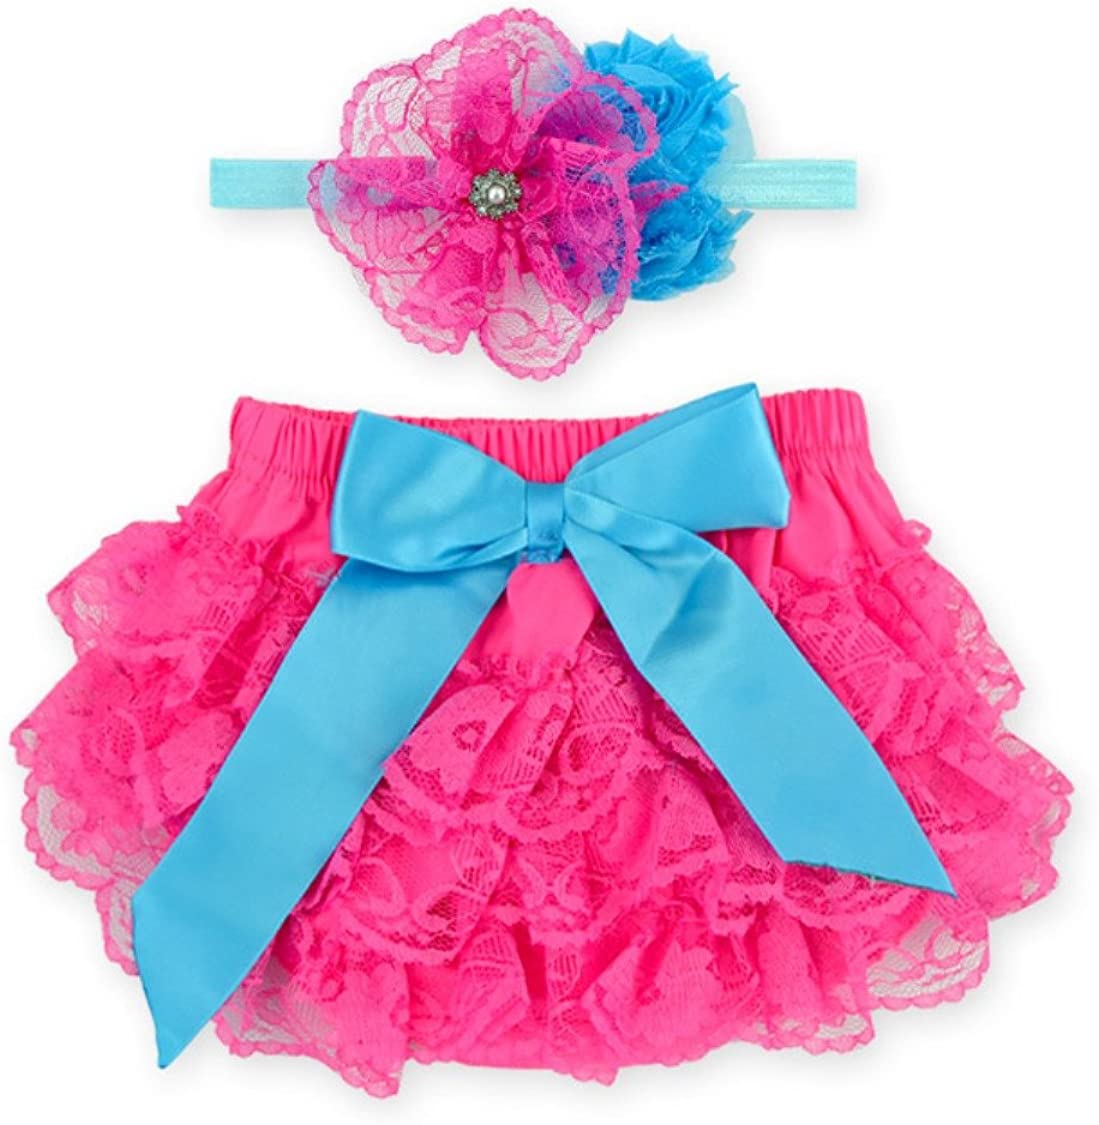 Rush Dance Lace Ribbon Baby Ruffle Bloomers Diaper Covers /& Headband